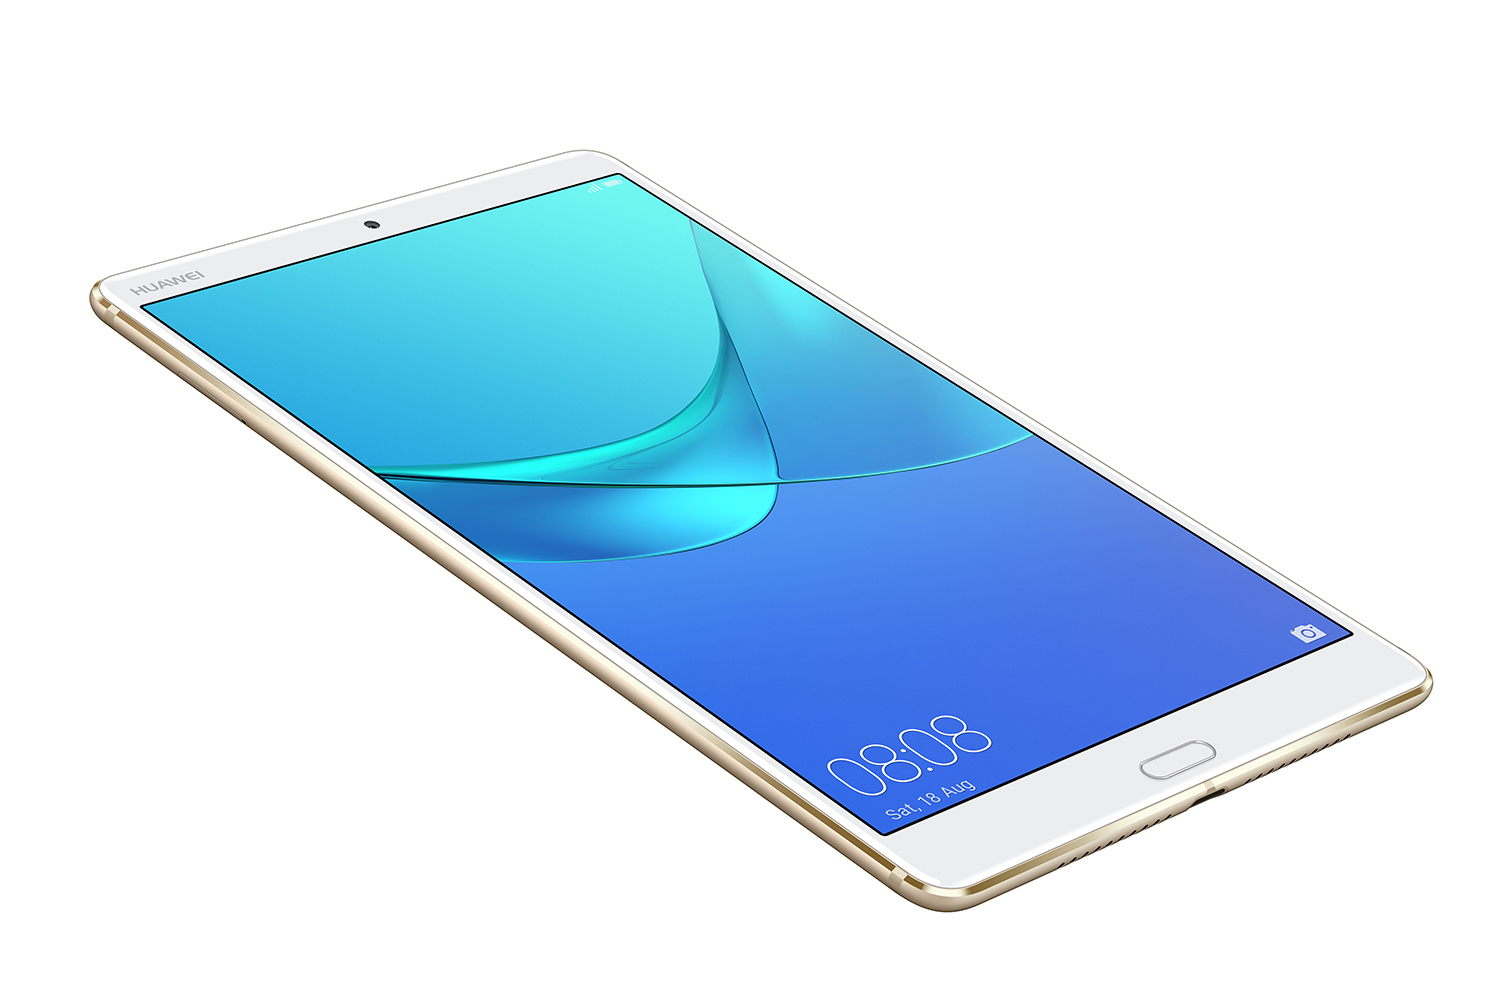 Huawei MediaPad M5 tablets came to Russia